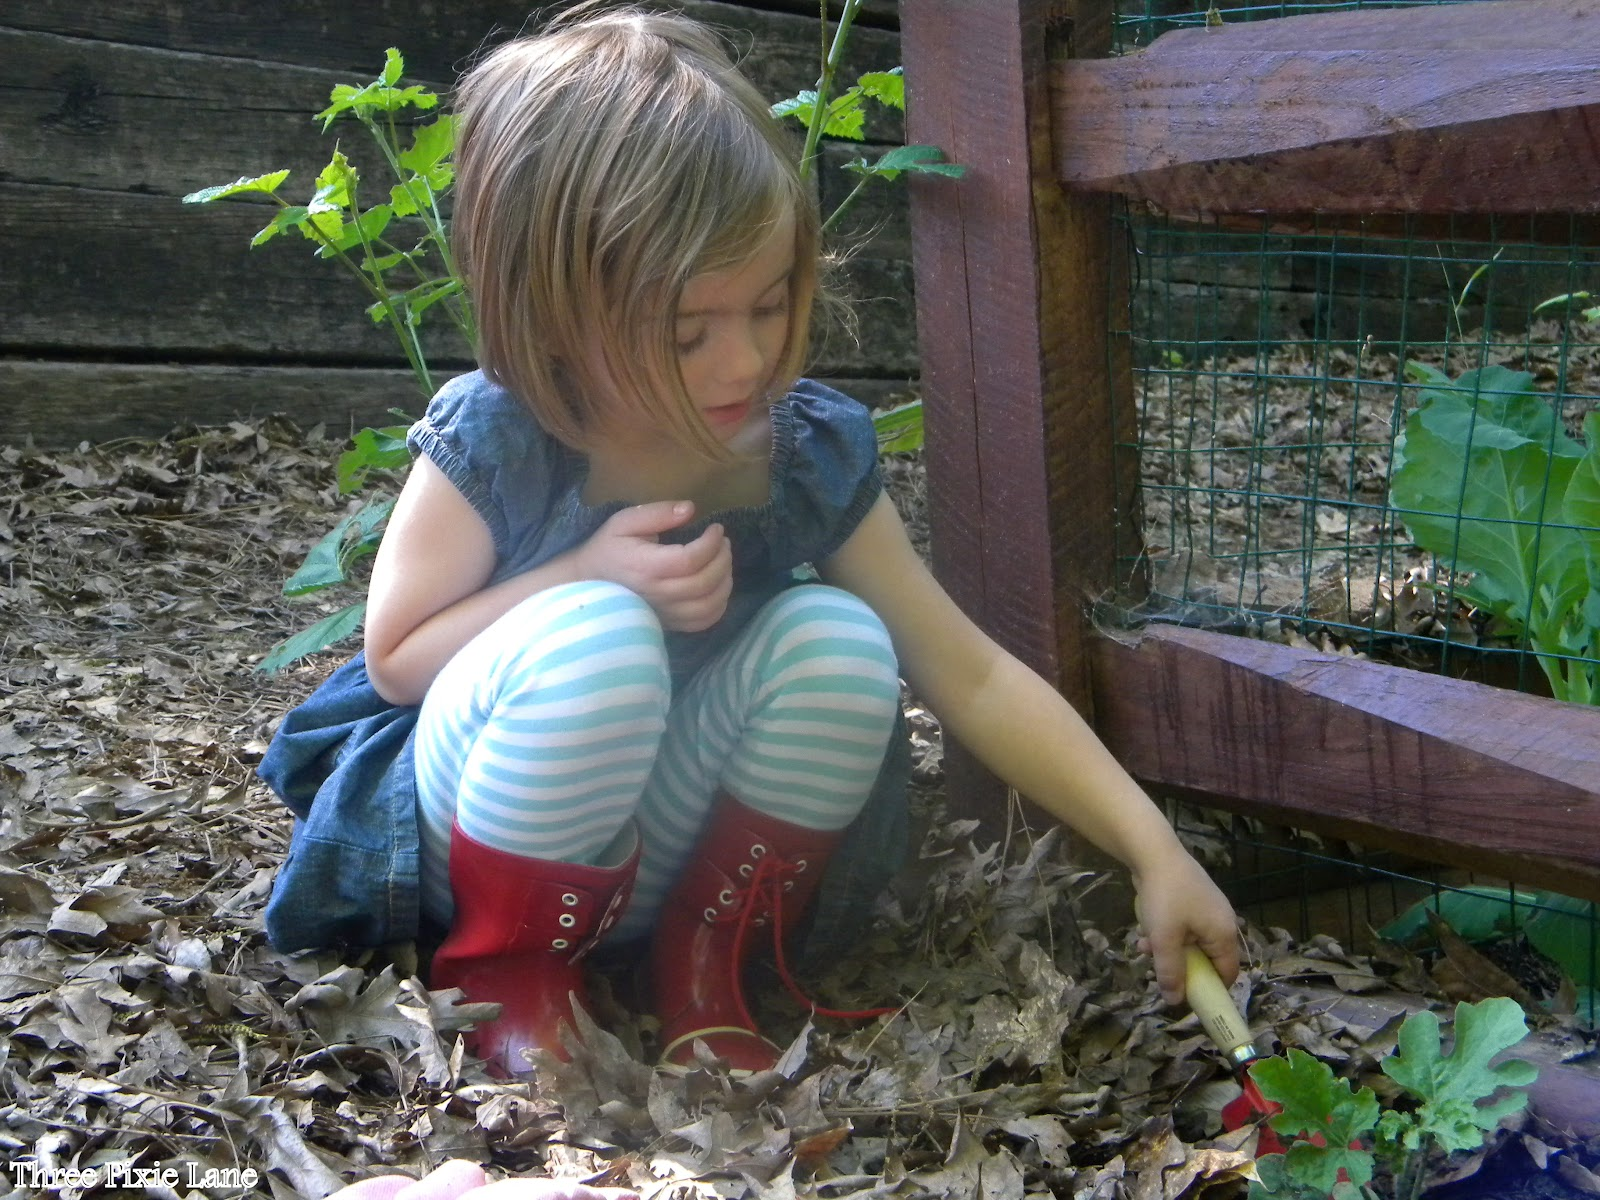 three pixie lane summer fun for older kids self sufficiency and